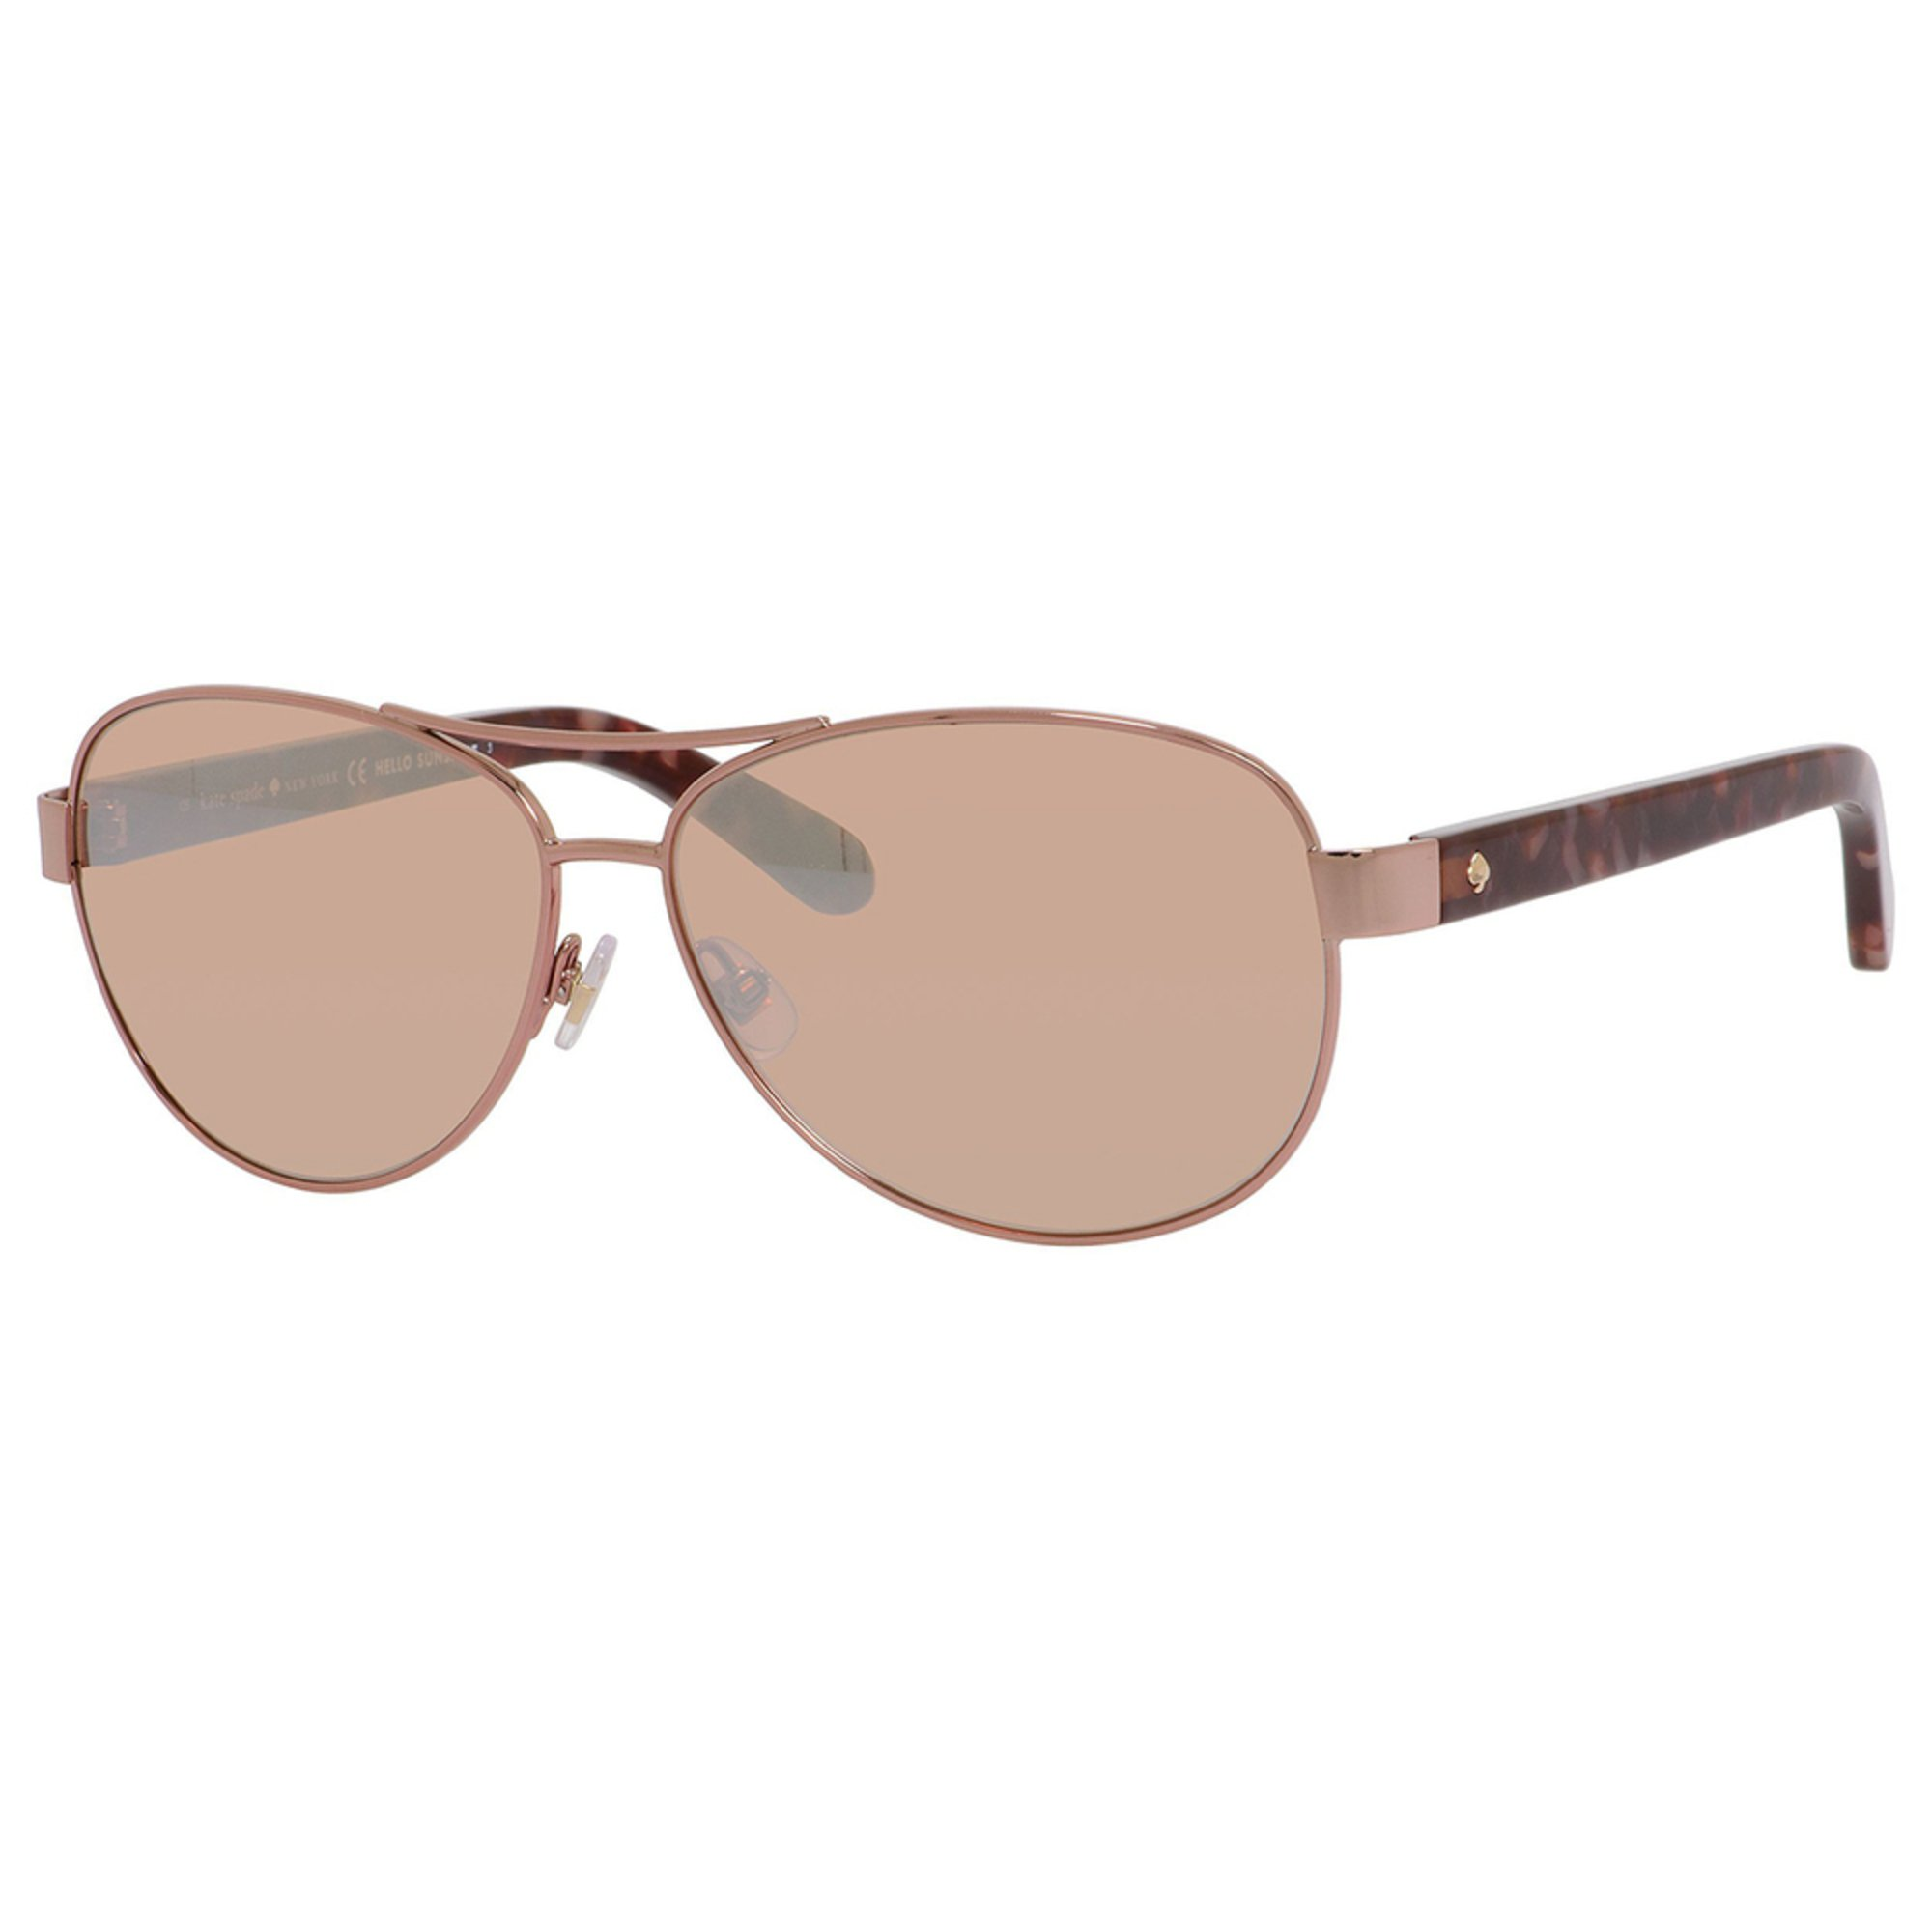 0787569e8e Kate Spade New York. Kate Spade New York Women s Dalia 2 Aviator Sunglasses